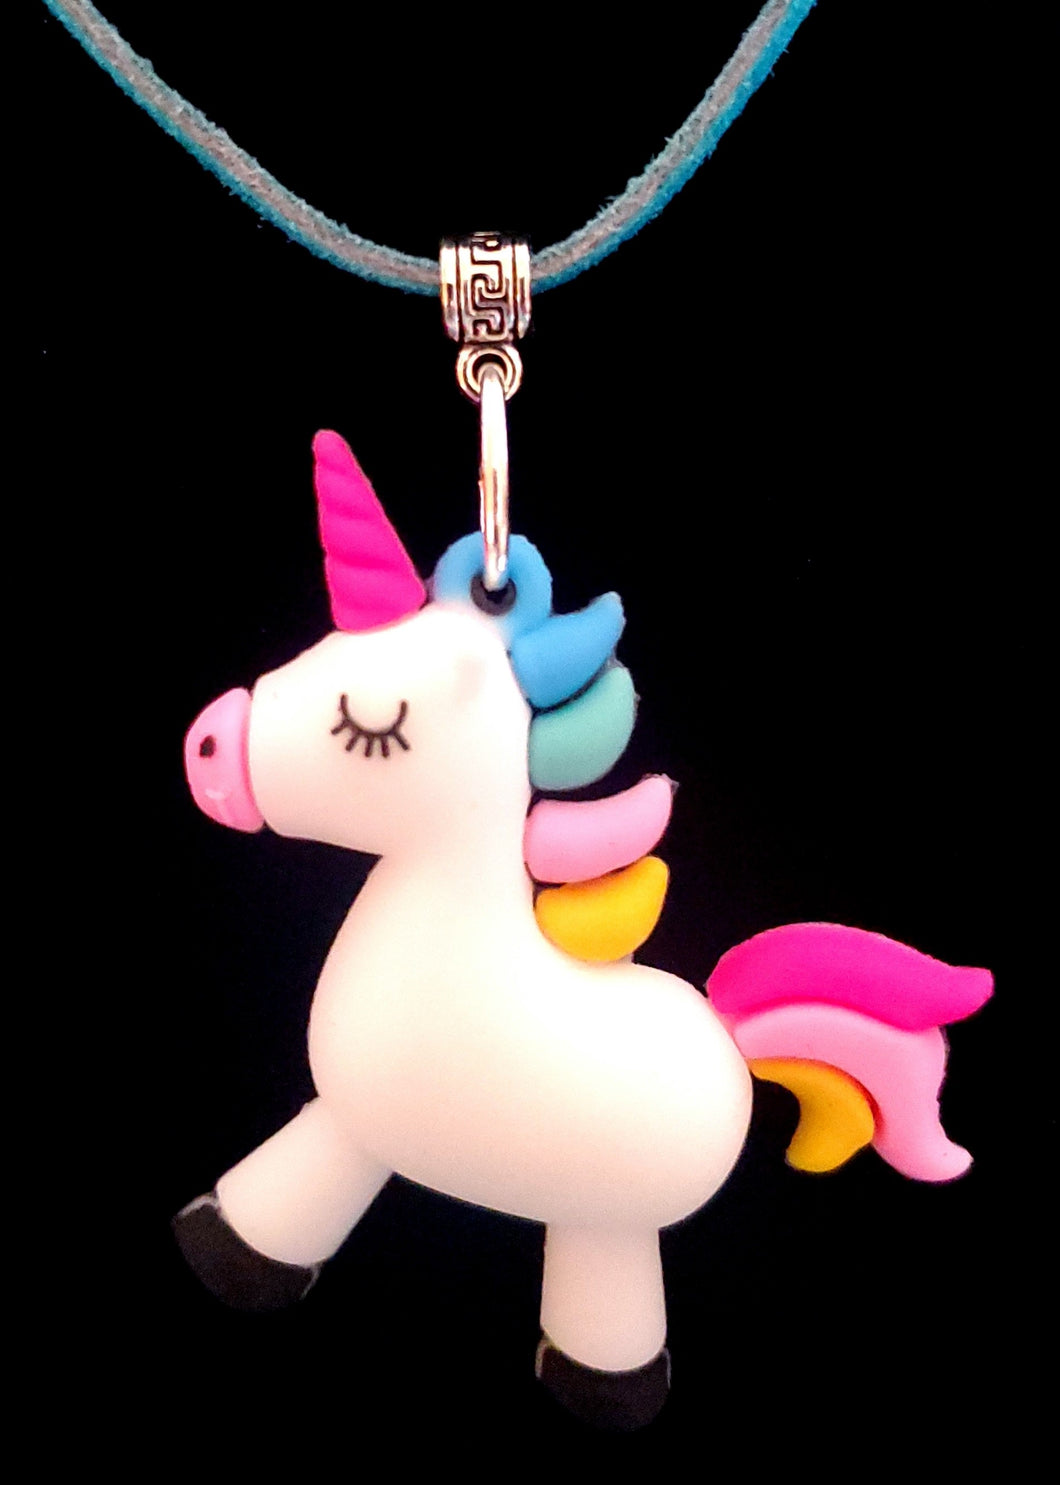 Colorful Unicorn Pendant With Teal Colored Leather Suede Necklace